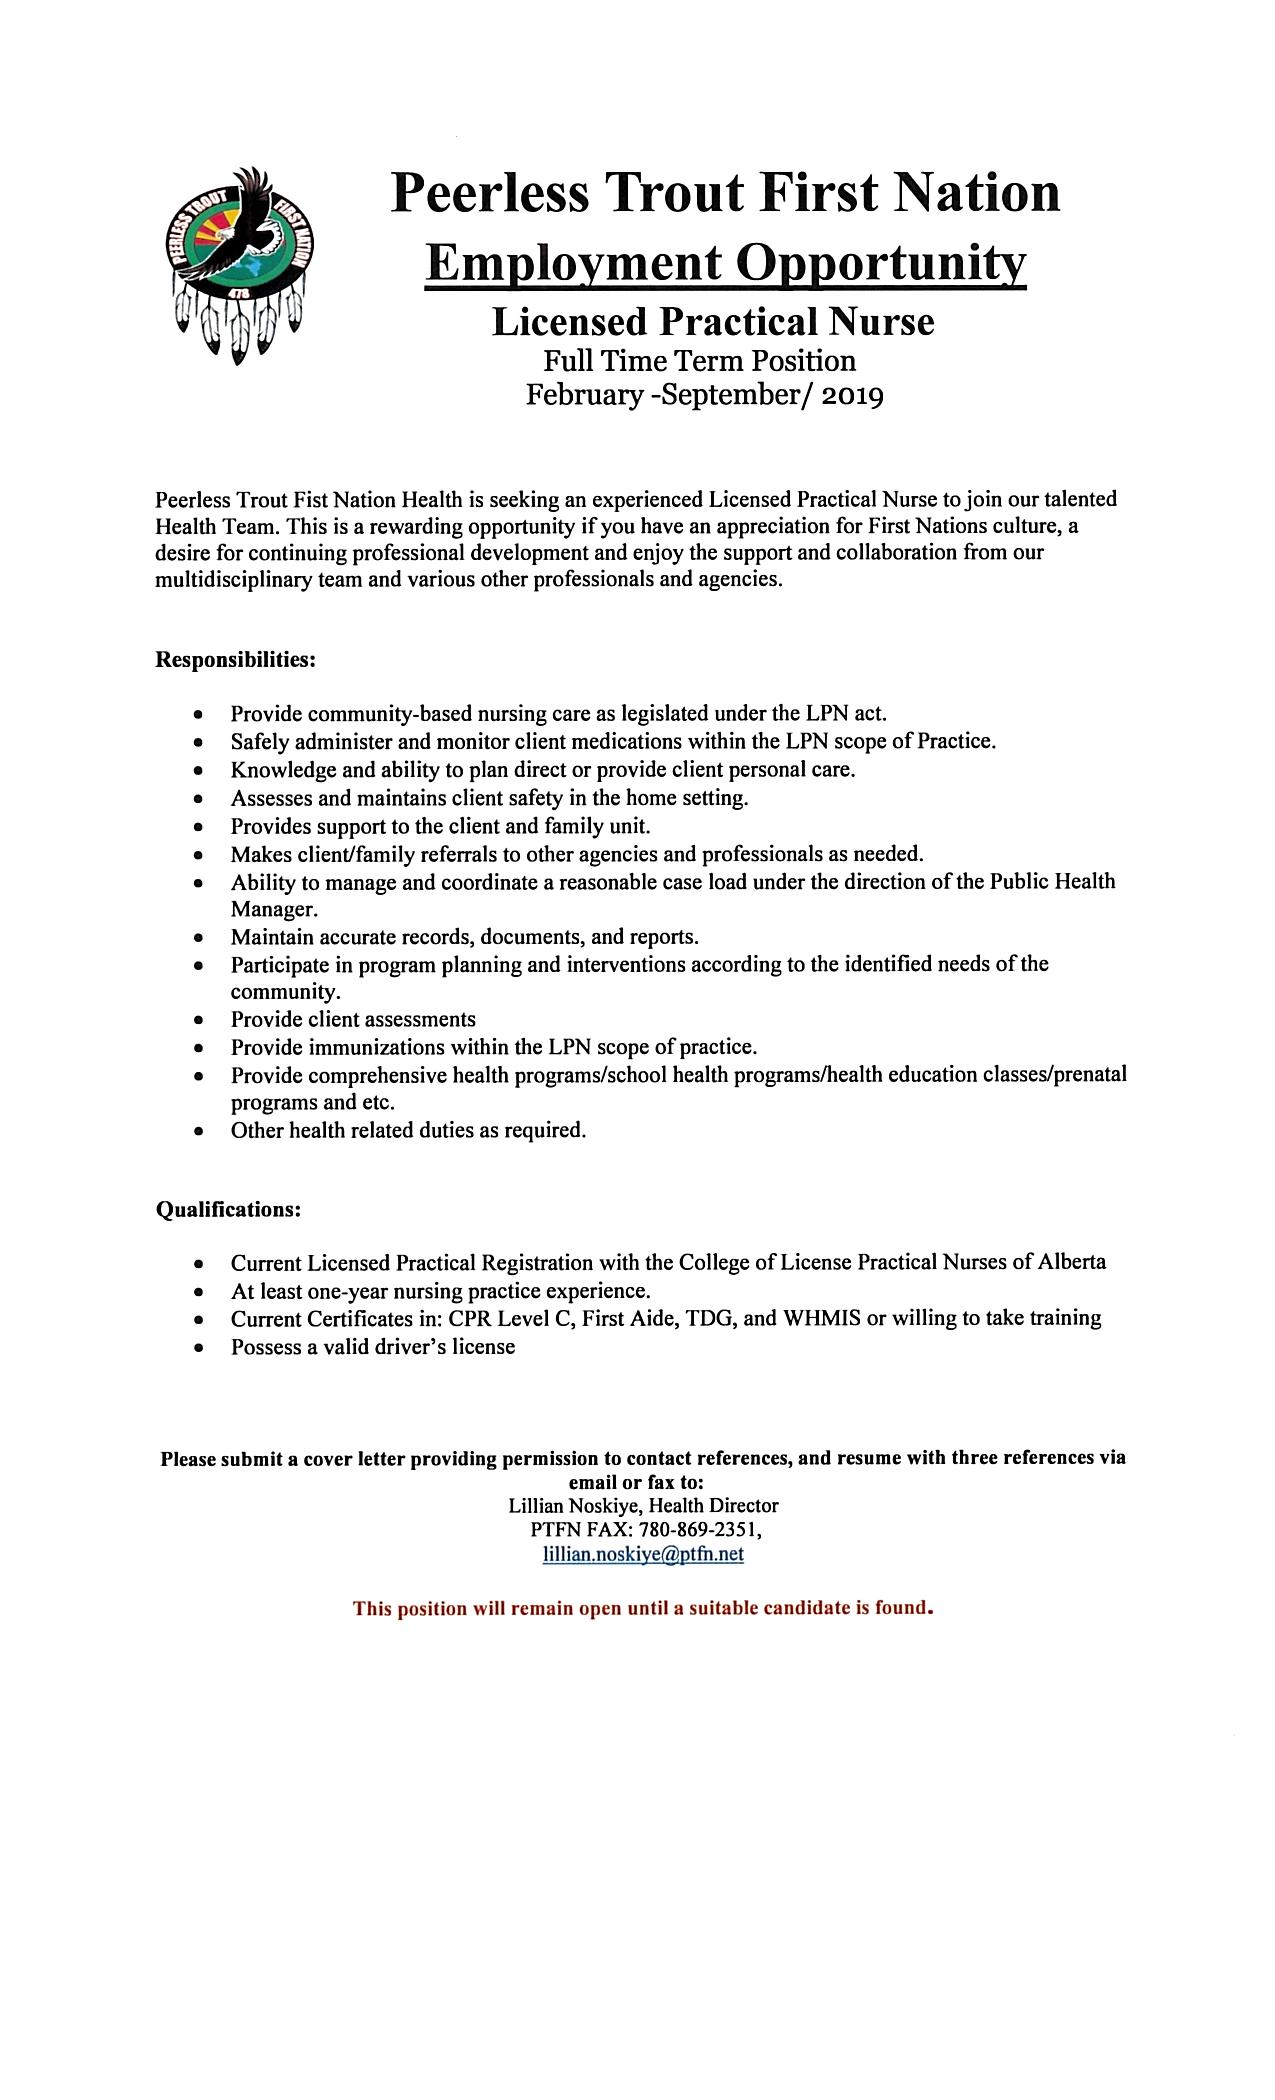 Licensed Practical Nurse Position — Peerless Trout First Nation